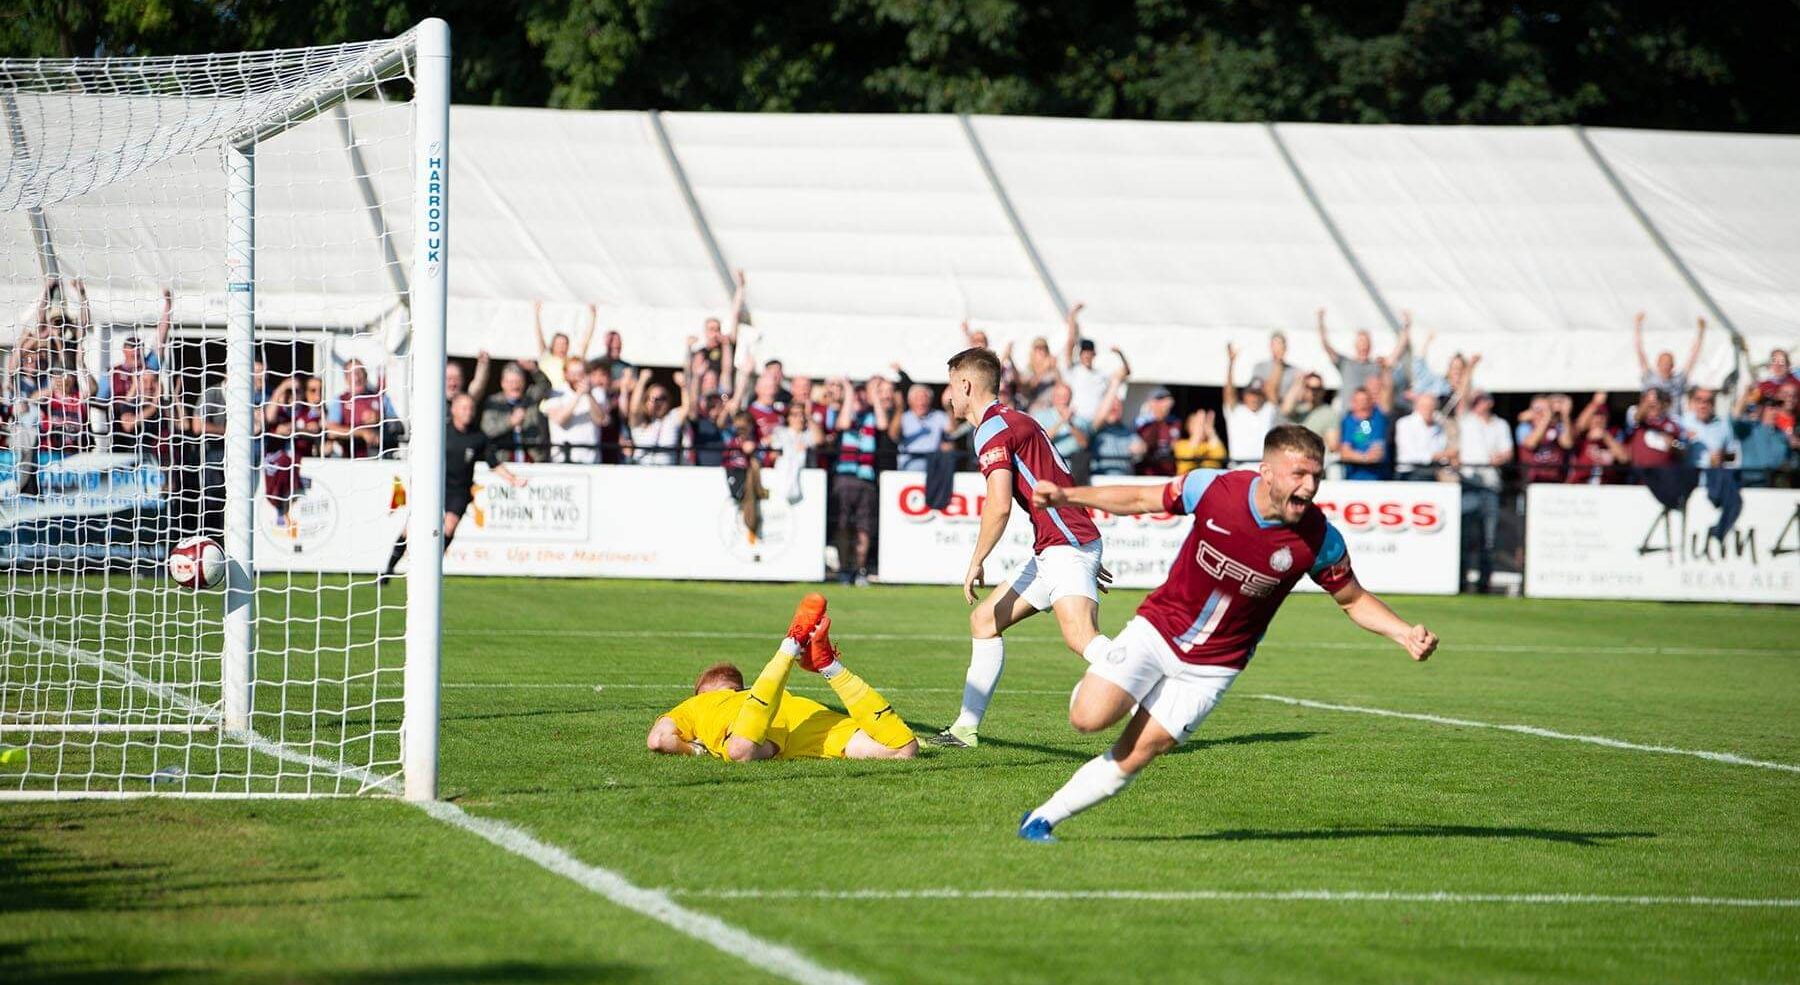 Match report: South Shields 4-1 Grantham Town